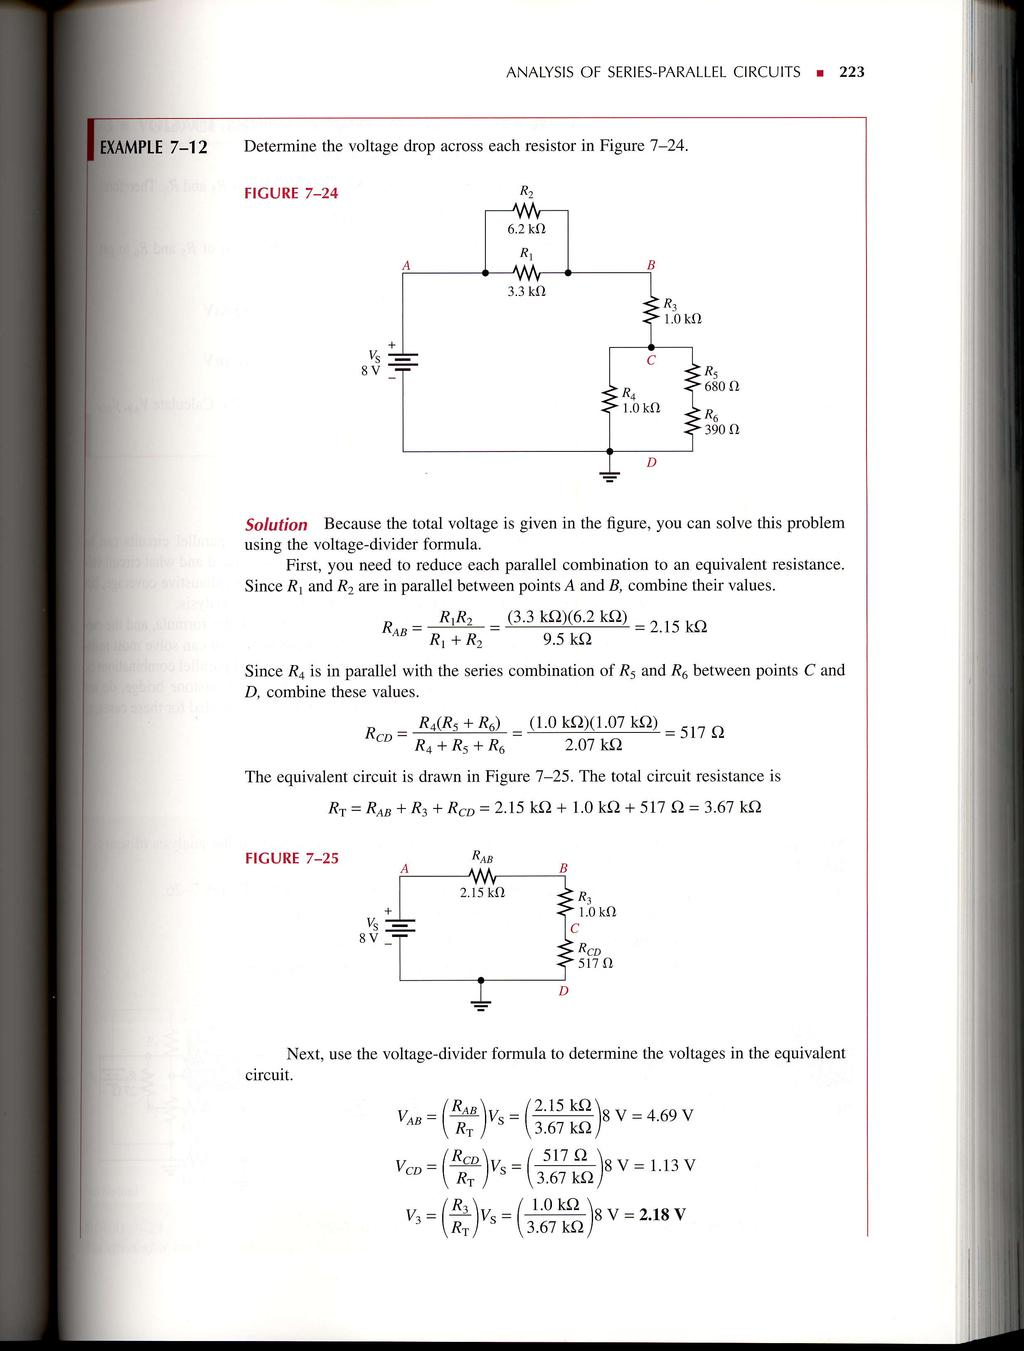 Seriesparallel Circuits Pdf Voltage Divider Network To Solve For Any Varaible In The Analysis Of Series Parallel A 223 Determine Drop Across Each Resistor